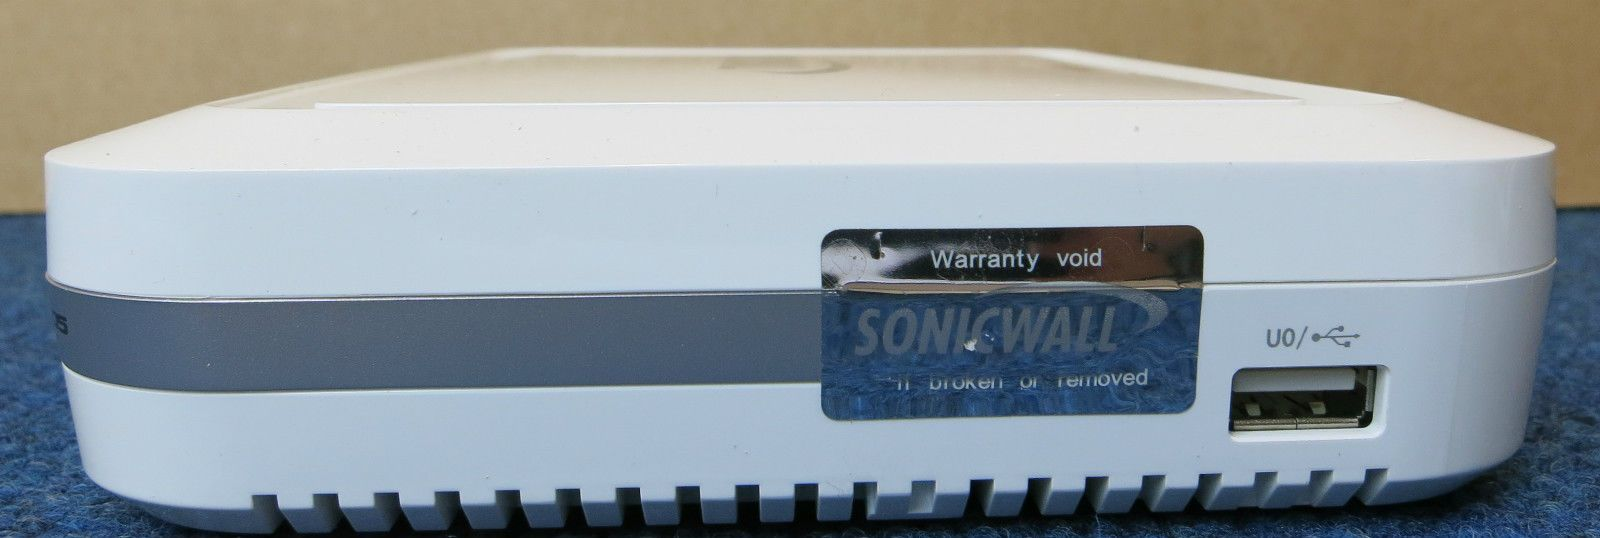 SONICWALL TZ 205 APL22-09D 5-PORT WIRED GIGABIT ETHERNET